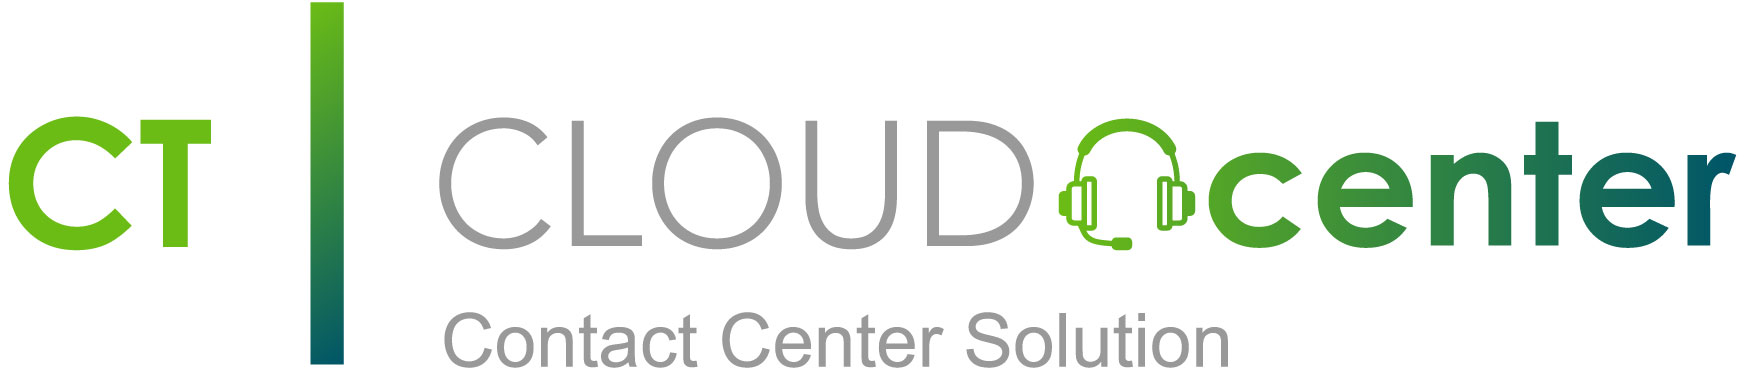 CT-Cloud-Contact-Center_logo